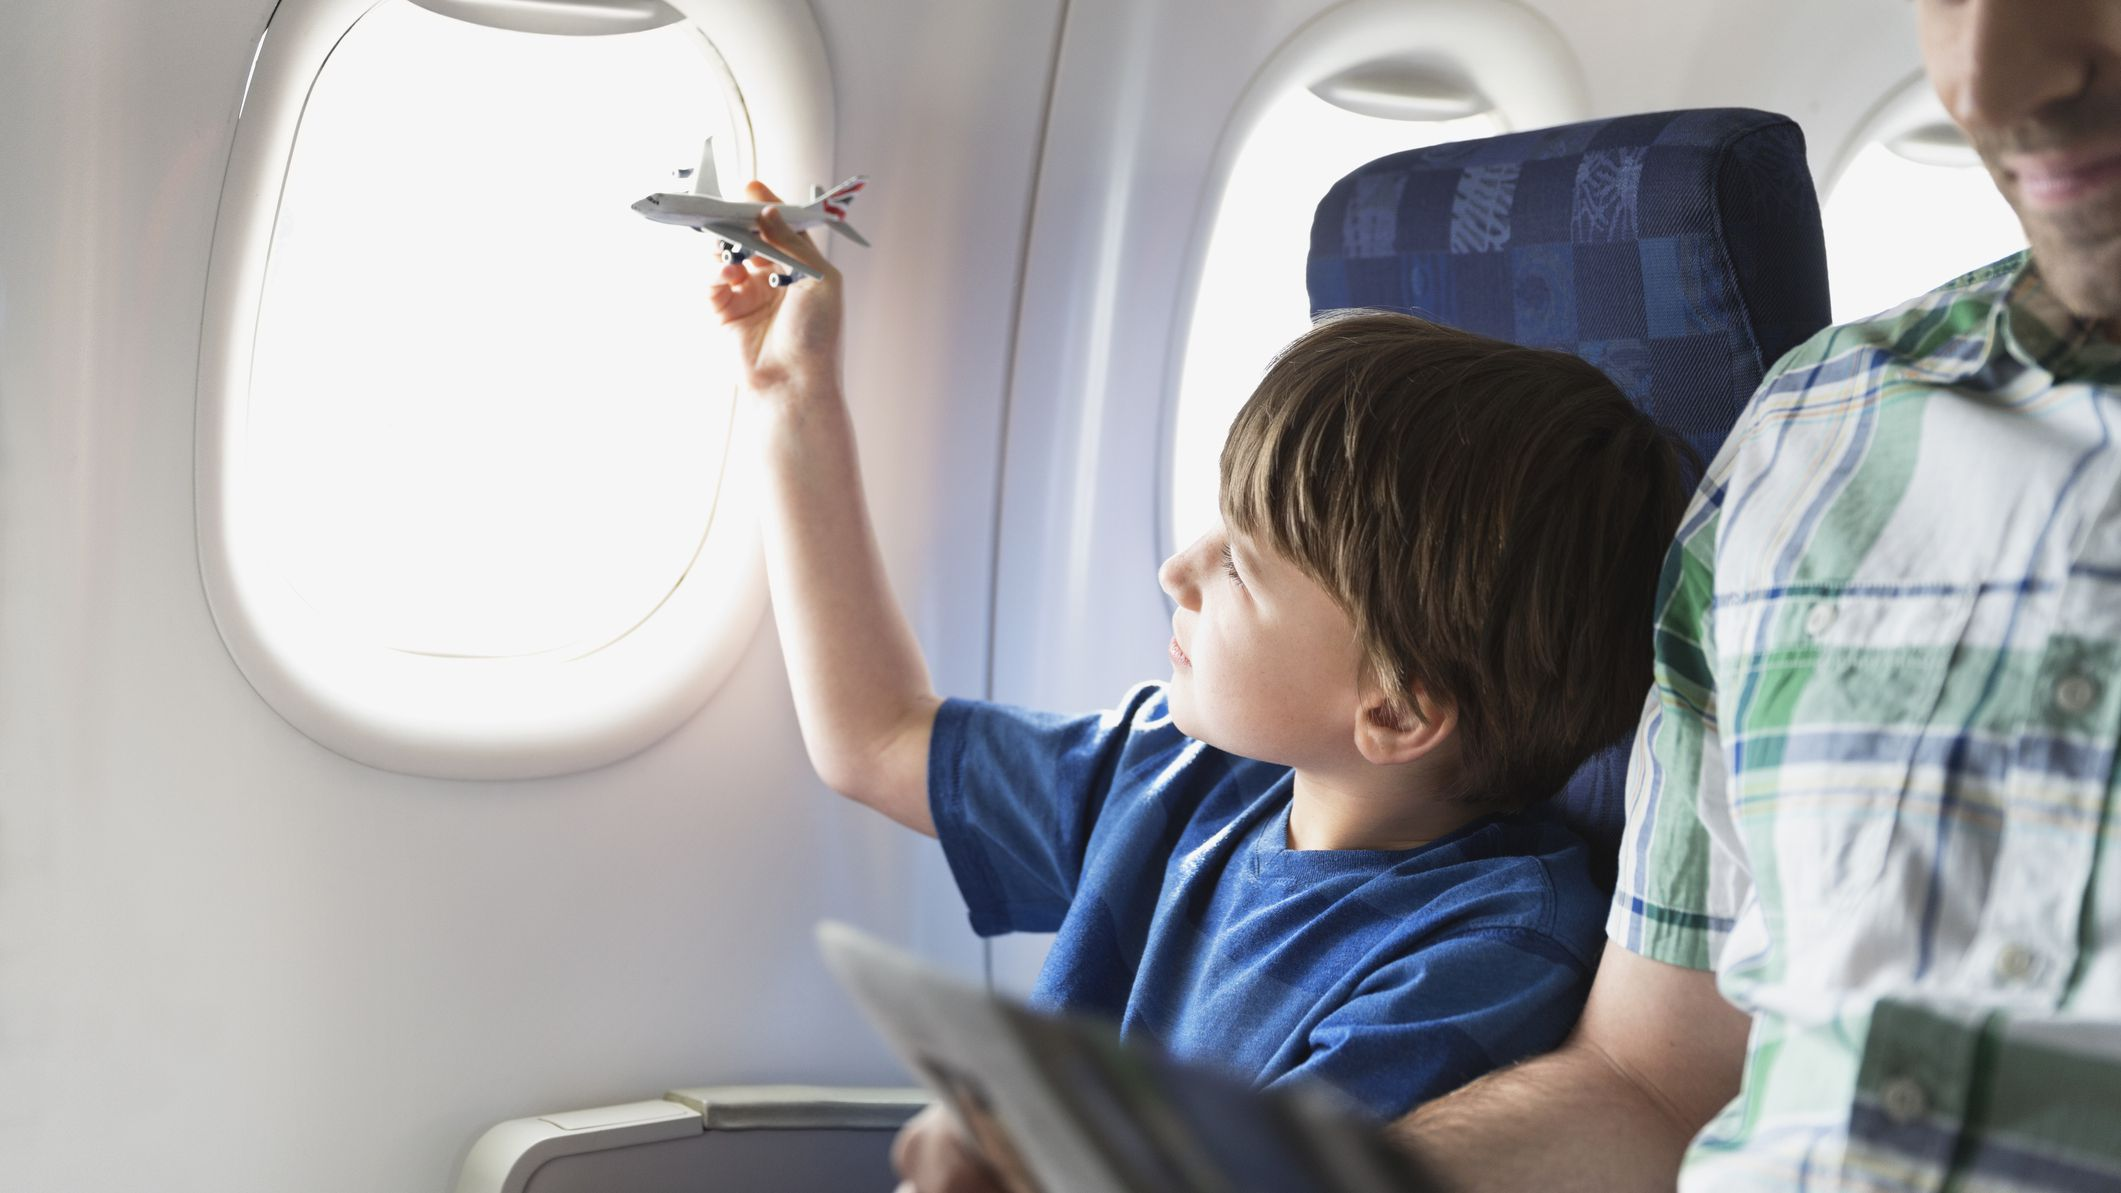 Does My Child Need Id To Fly